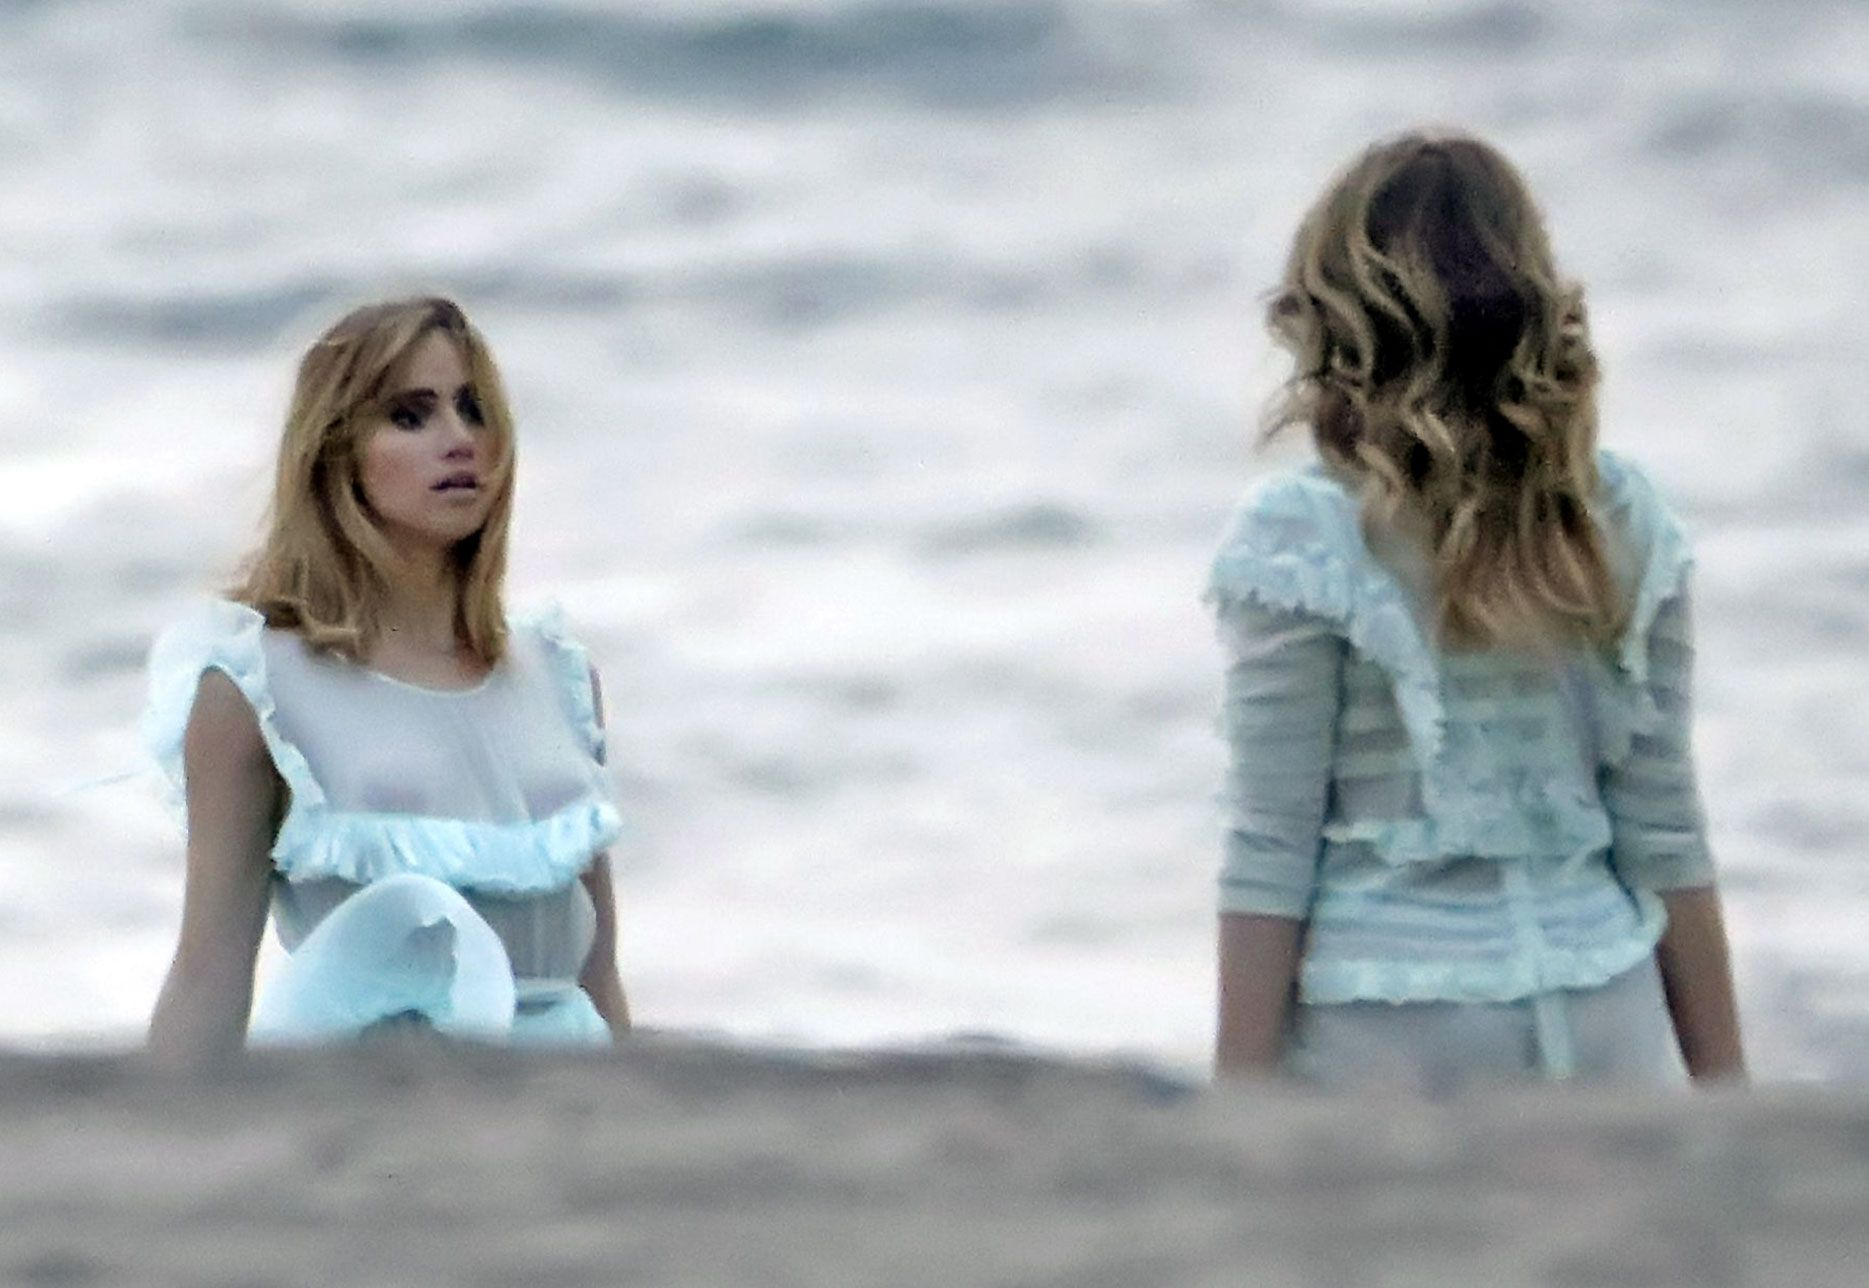 0907234845742_128_Suki-Waterhouse-nude-naked-sexy-topless-hot-cleavage-10-3-thefappeningblog.com_.jpg